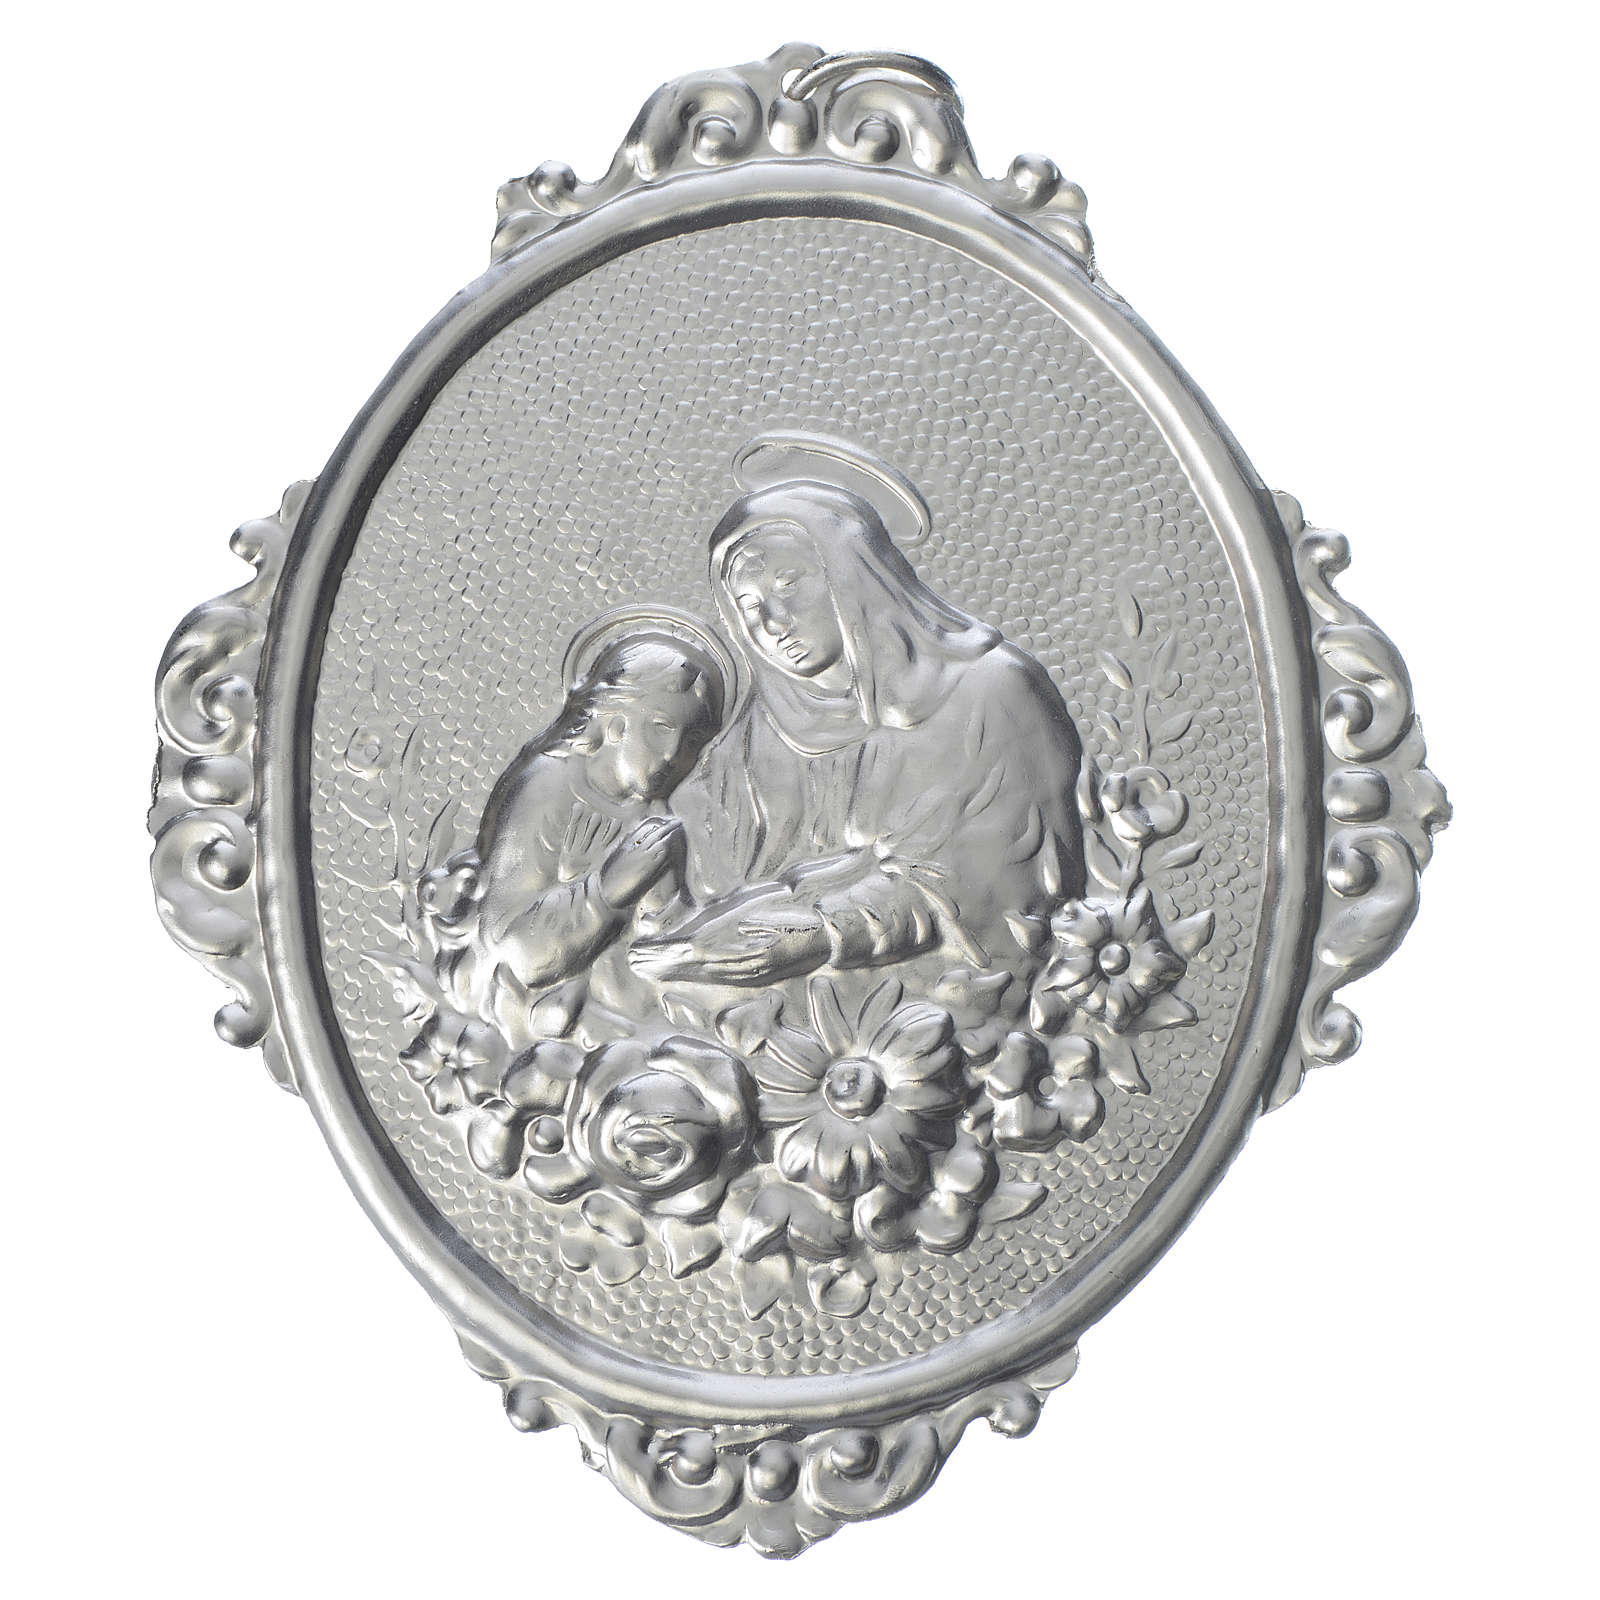 Confraternity Medal in brass, Saint Anne with flowers 3